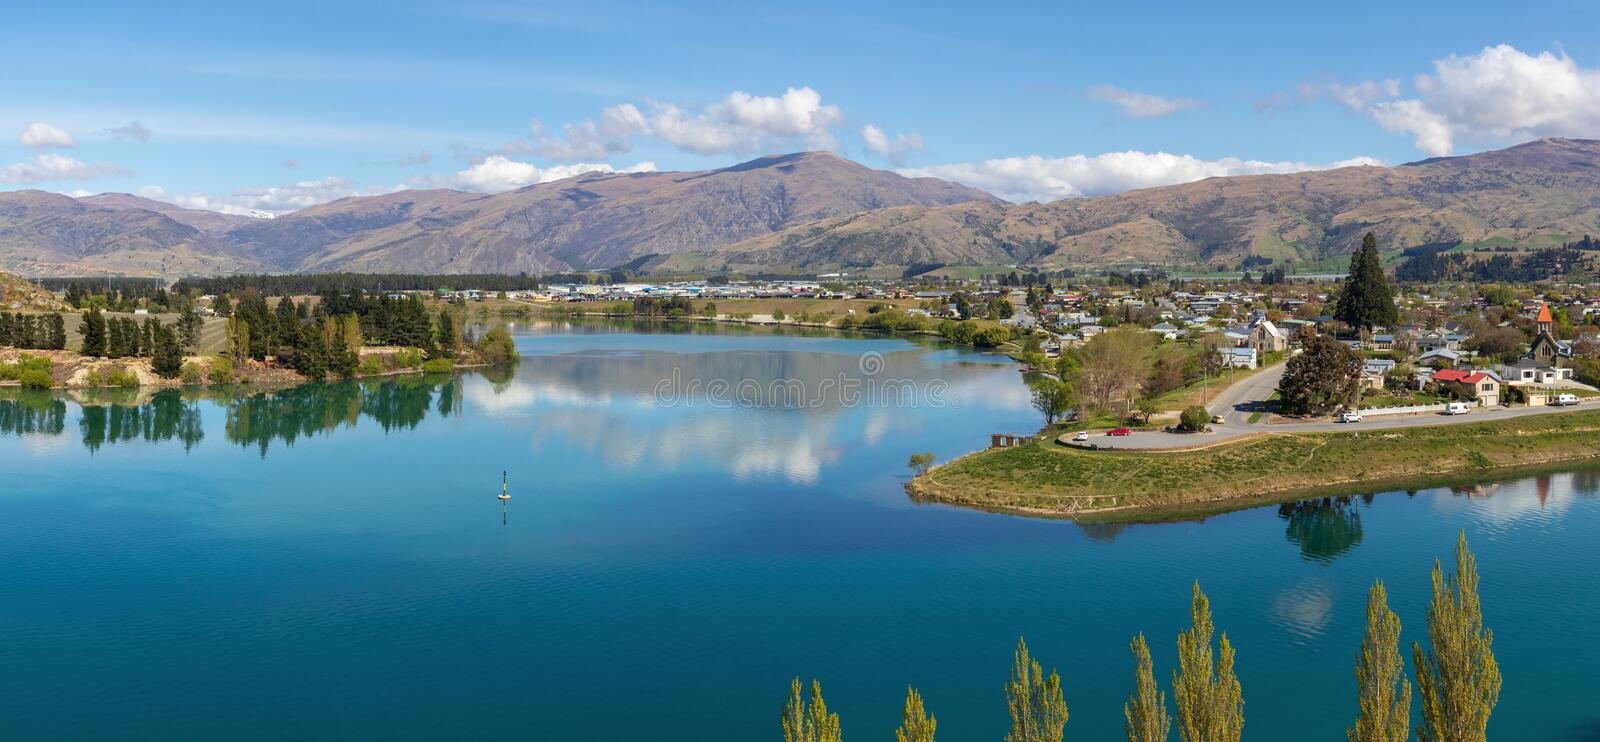 Cromwell and Kawarau river aerial view, New Zealand. Cromwell and Kawarau river  aerial view, Otago, New Zealand royalty free stock image